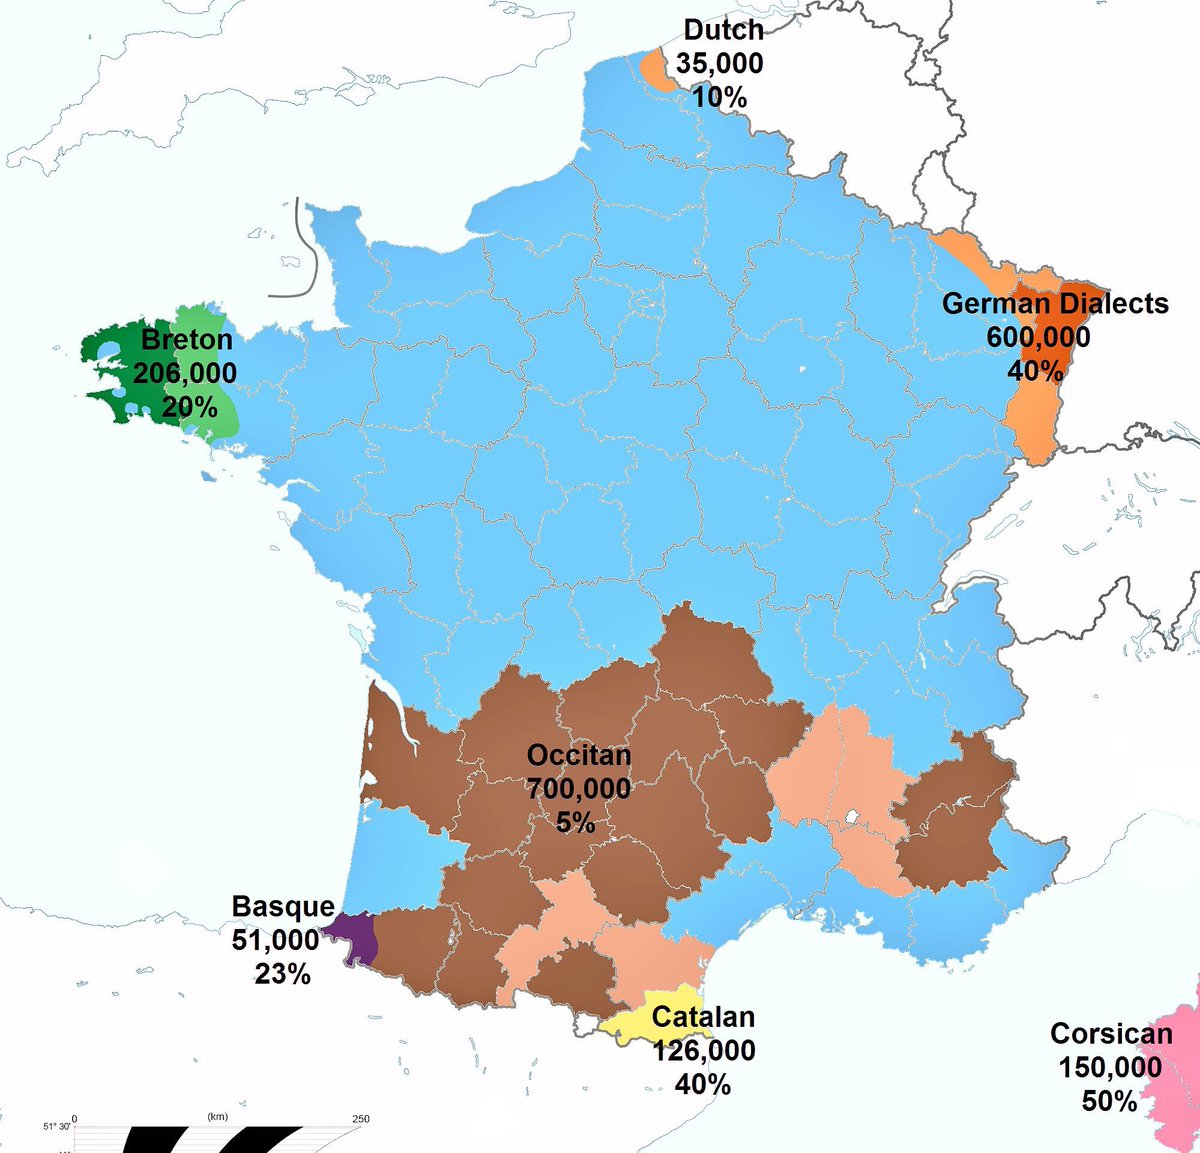 Basque France Map.Uk Language Maps On Twitter Languages Of France